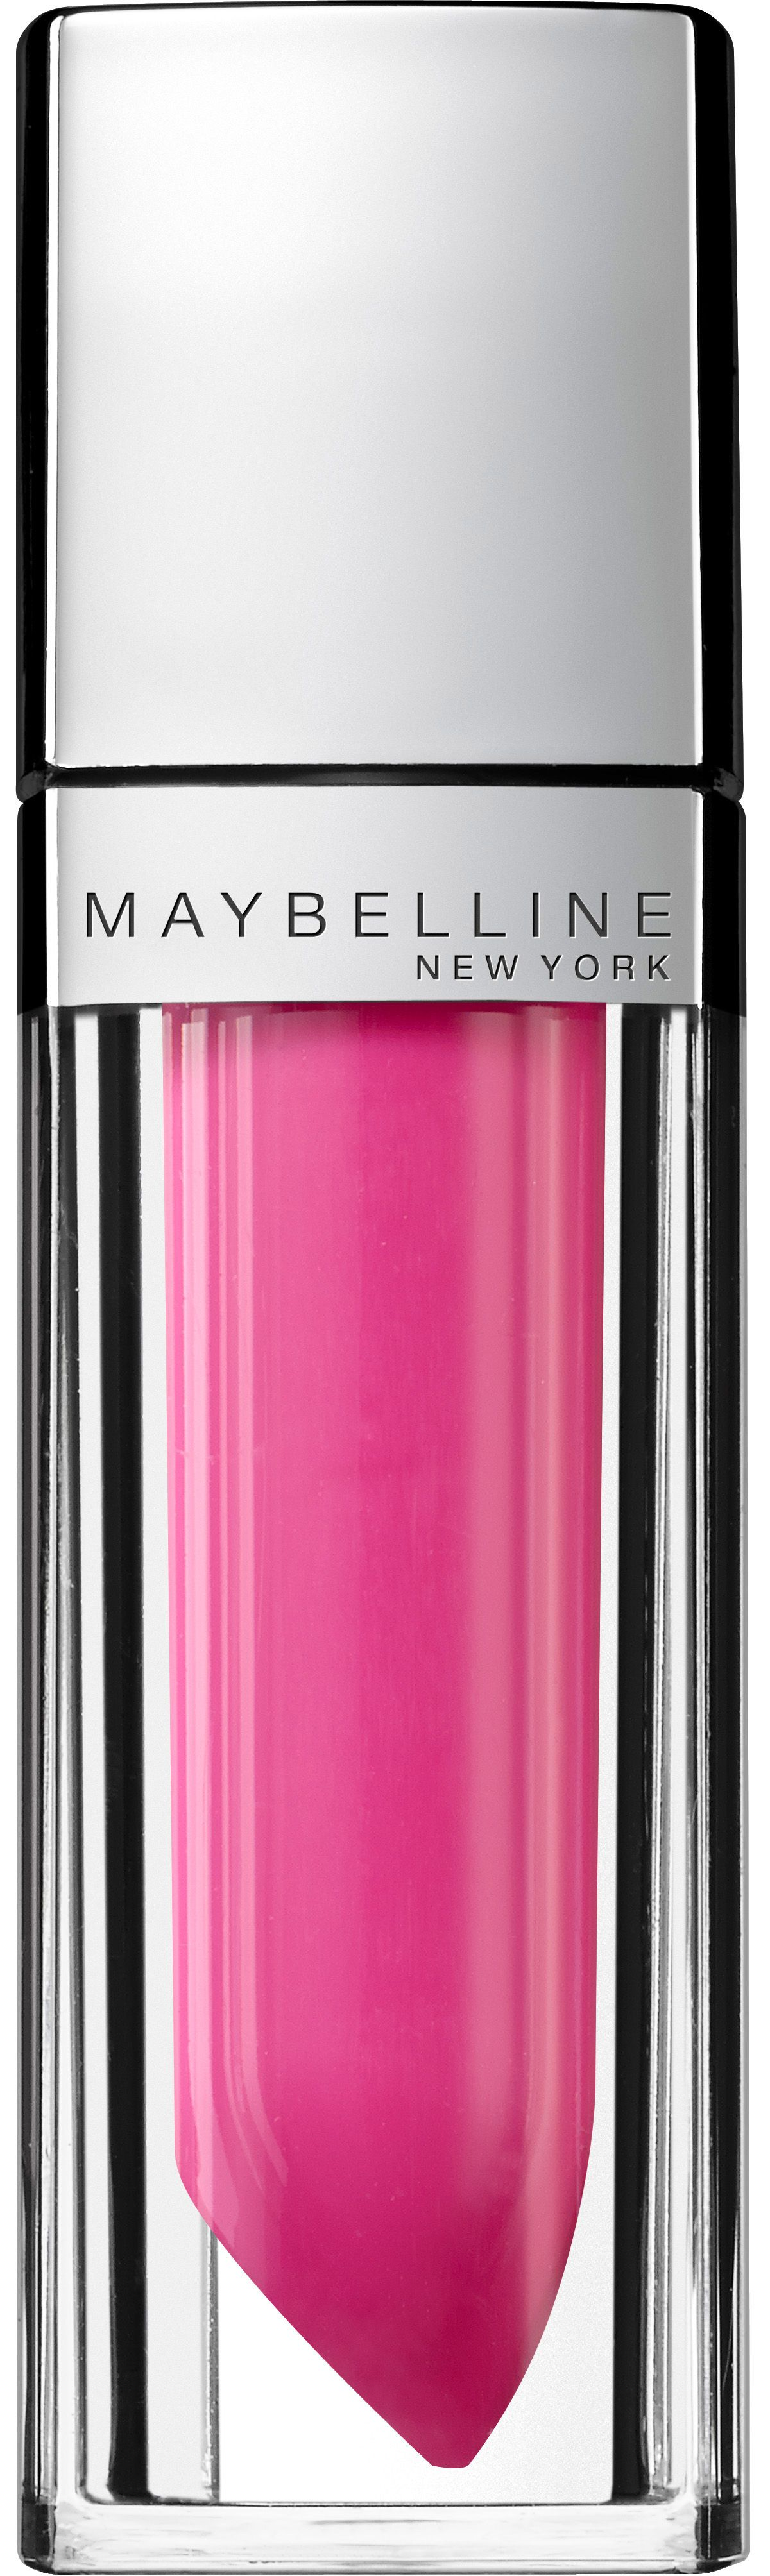 Maybelline New York, »Color Elixir«, Lippen-Creme-Lack